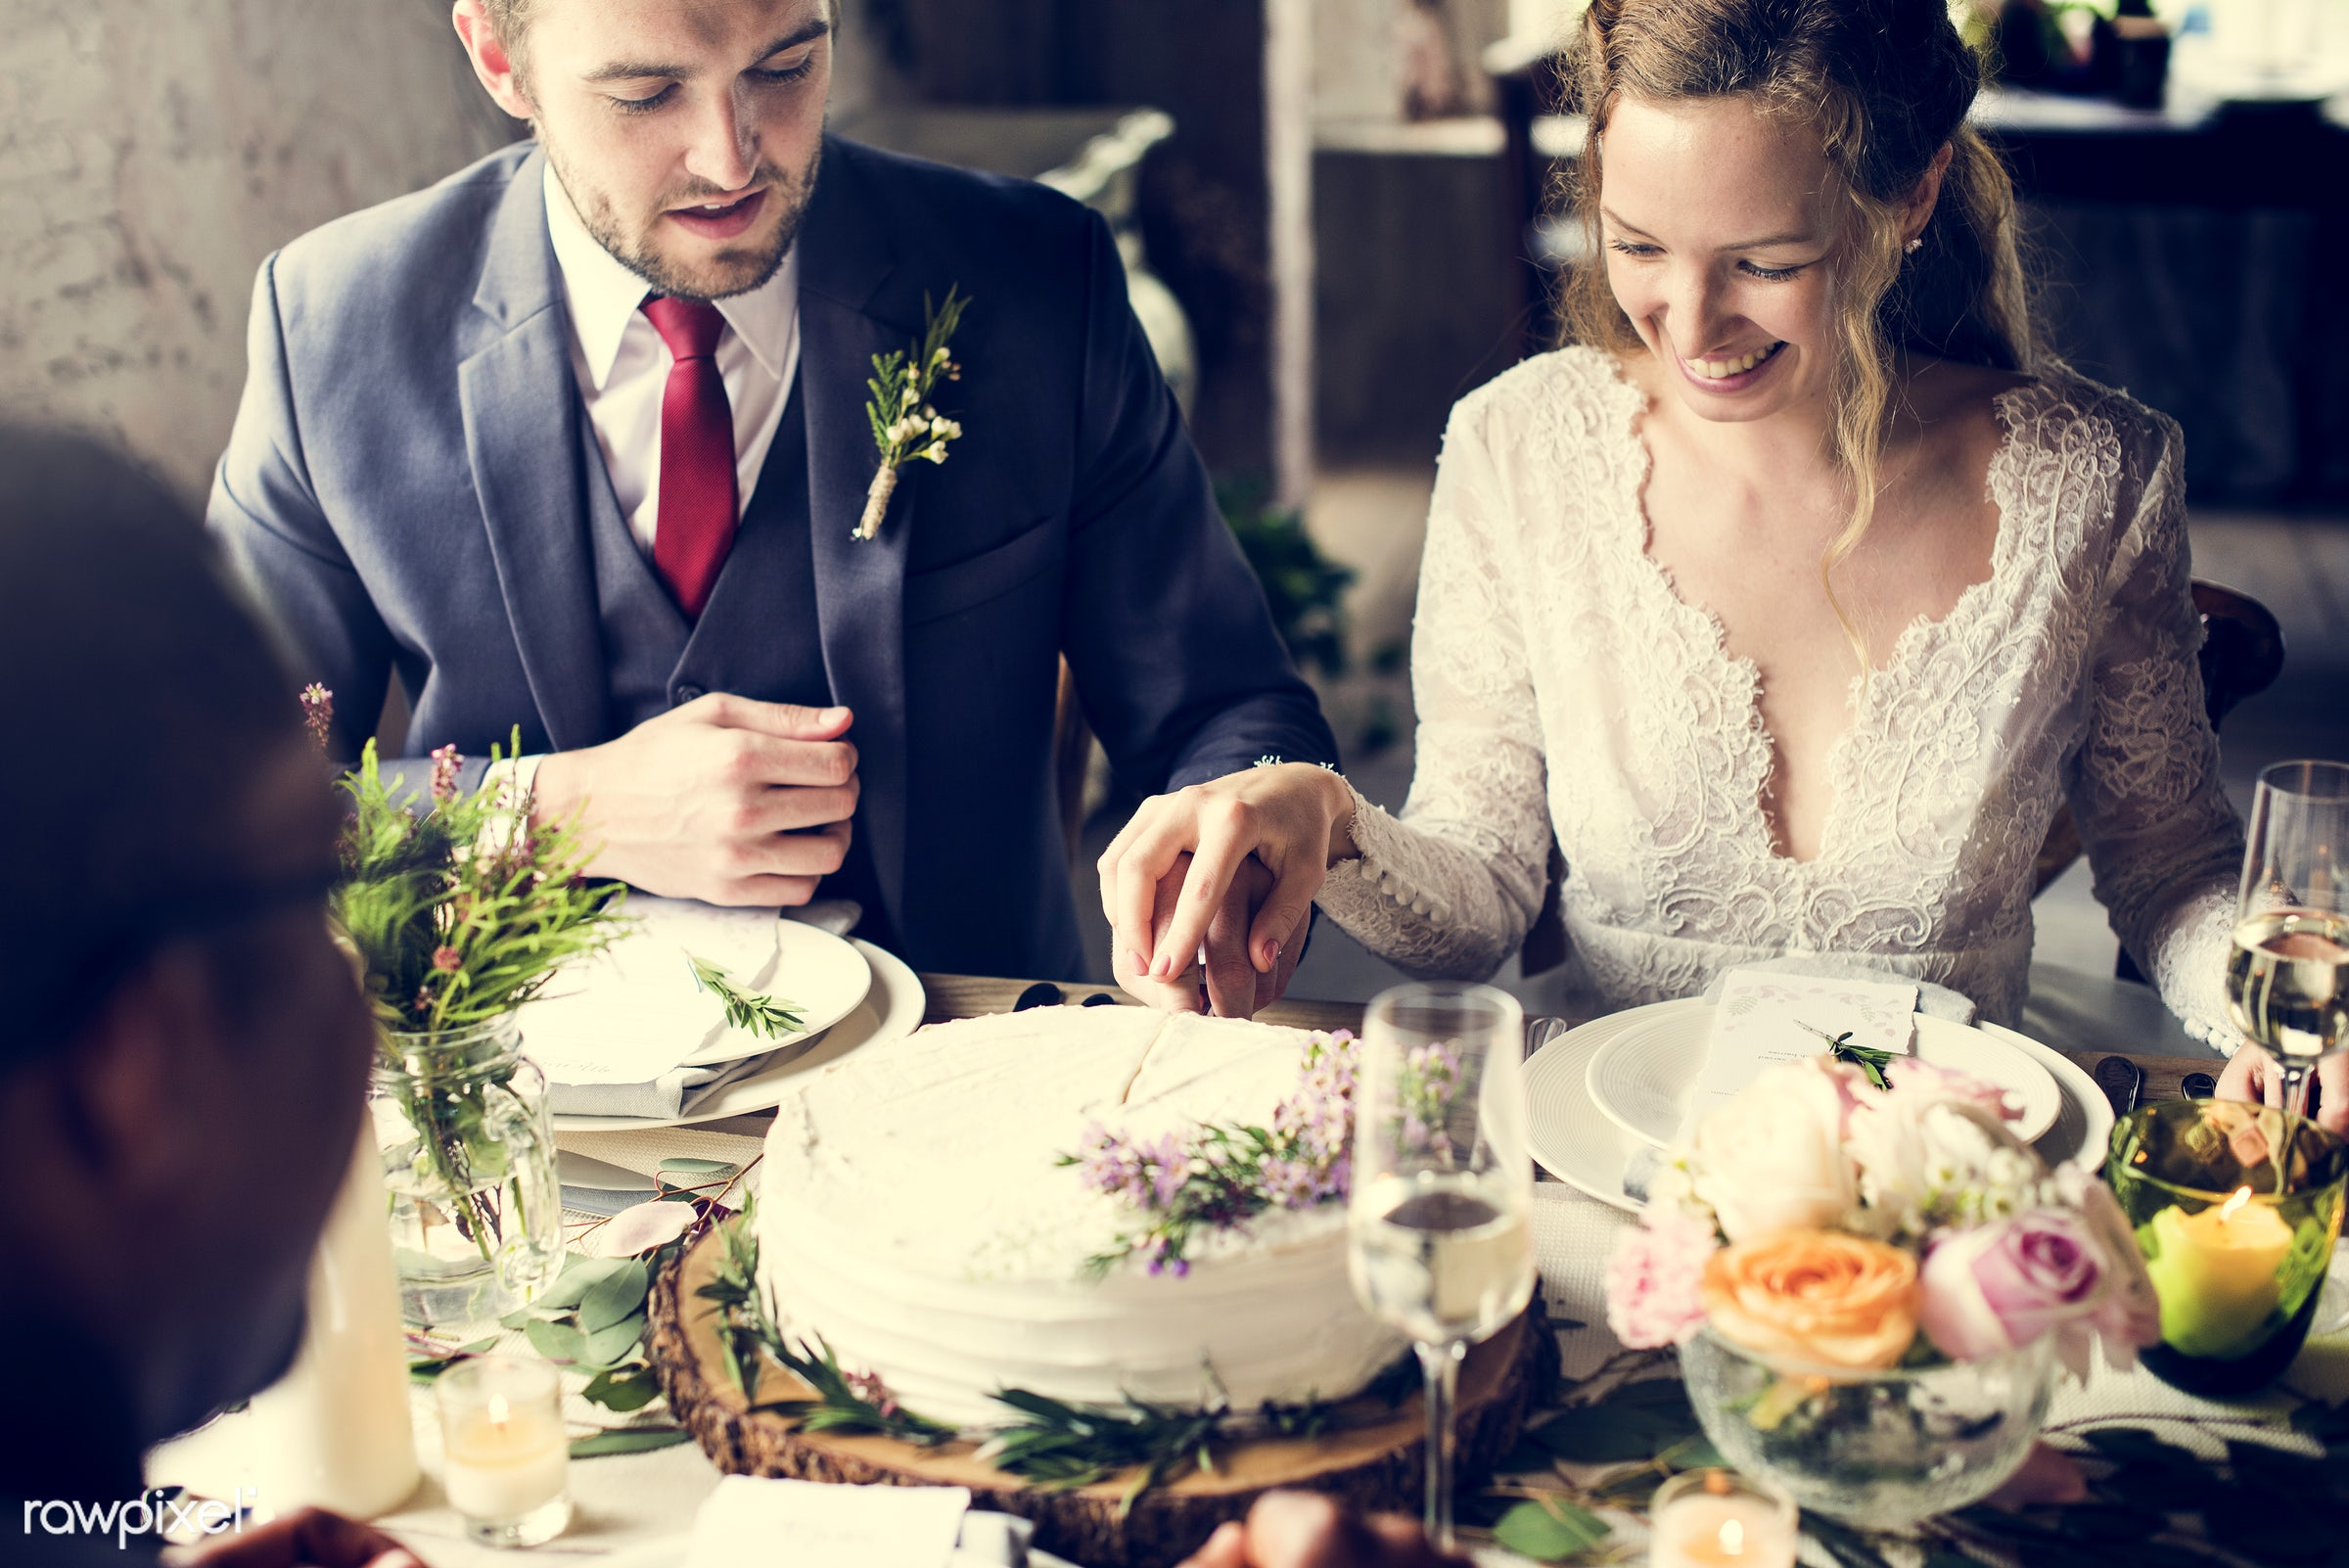 expression, person, smitten, people, together, love, married, friends, woman, family, event, gathering, cheerful, cake,...